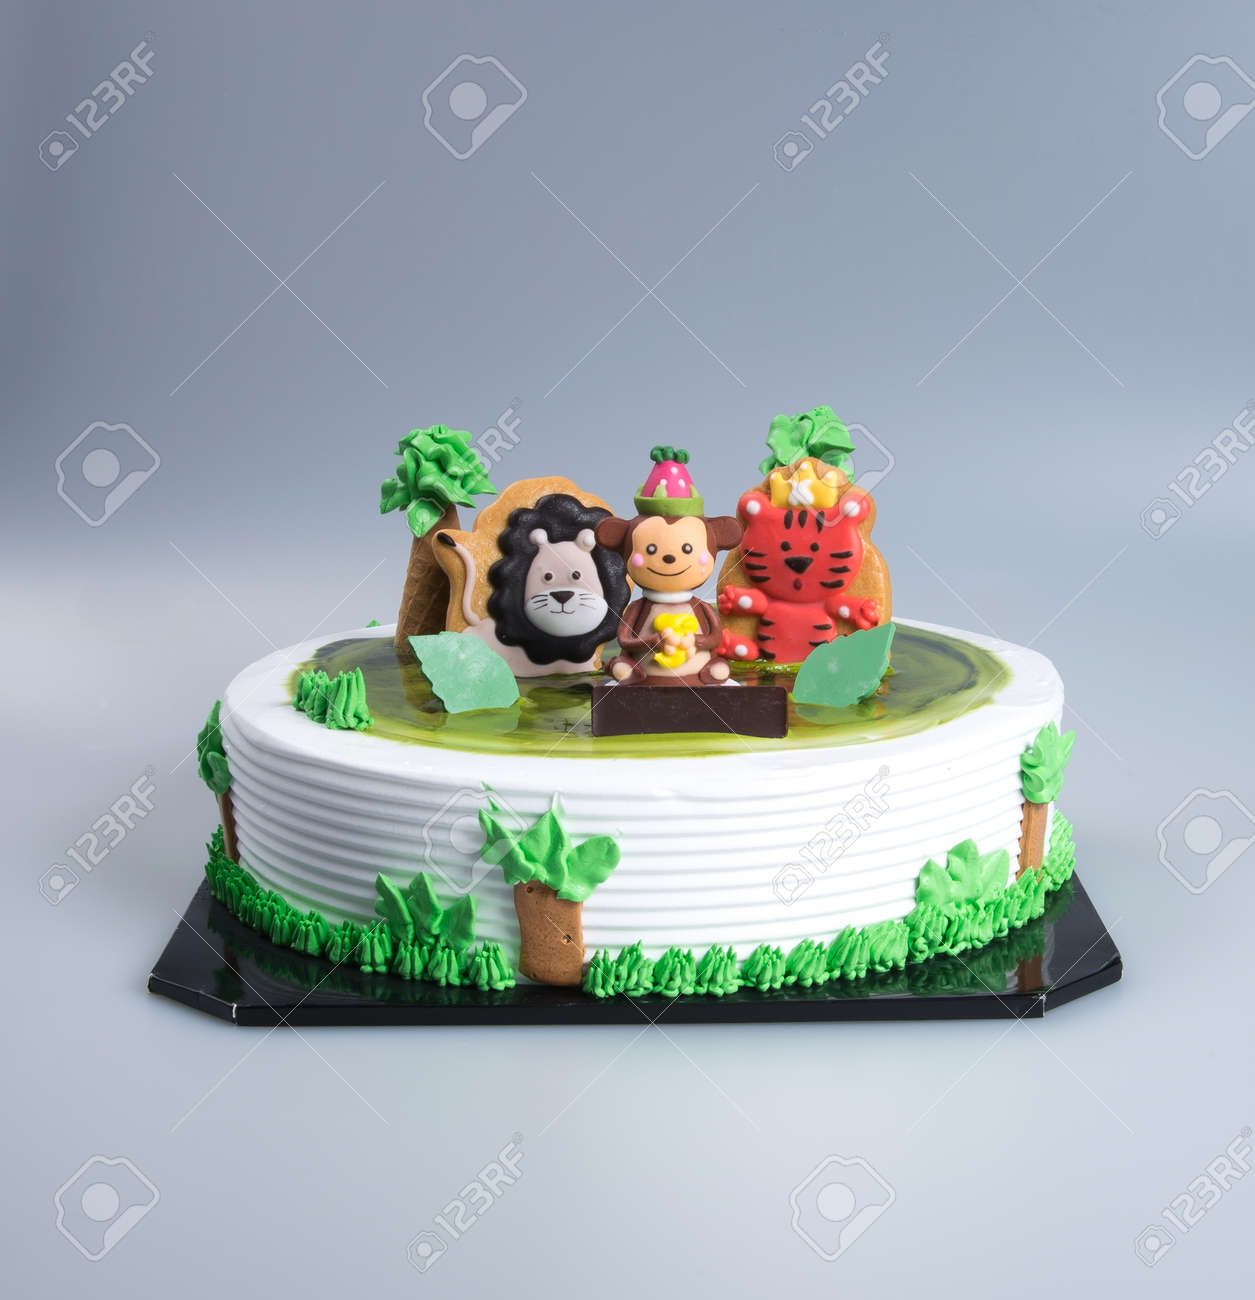 Tremendous Cake Or Creative Animals Themed Cake On A Background Stock Photo Birthday Cards Printable Trancafe Filternl